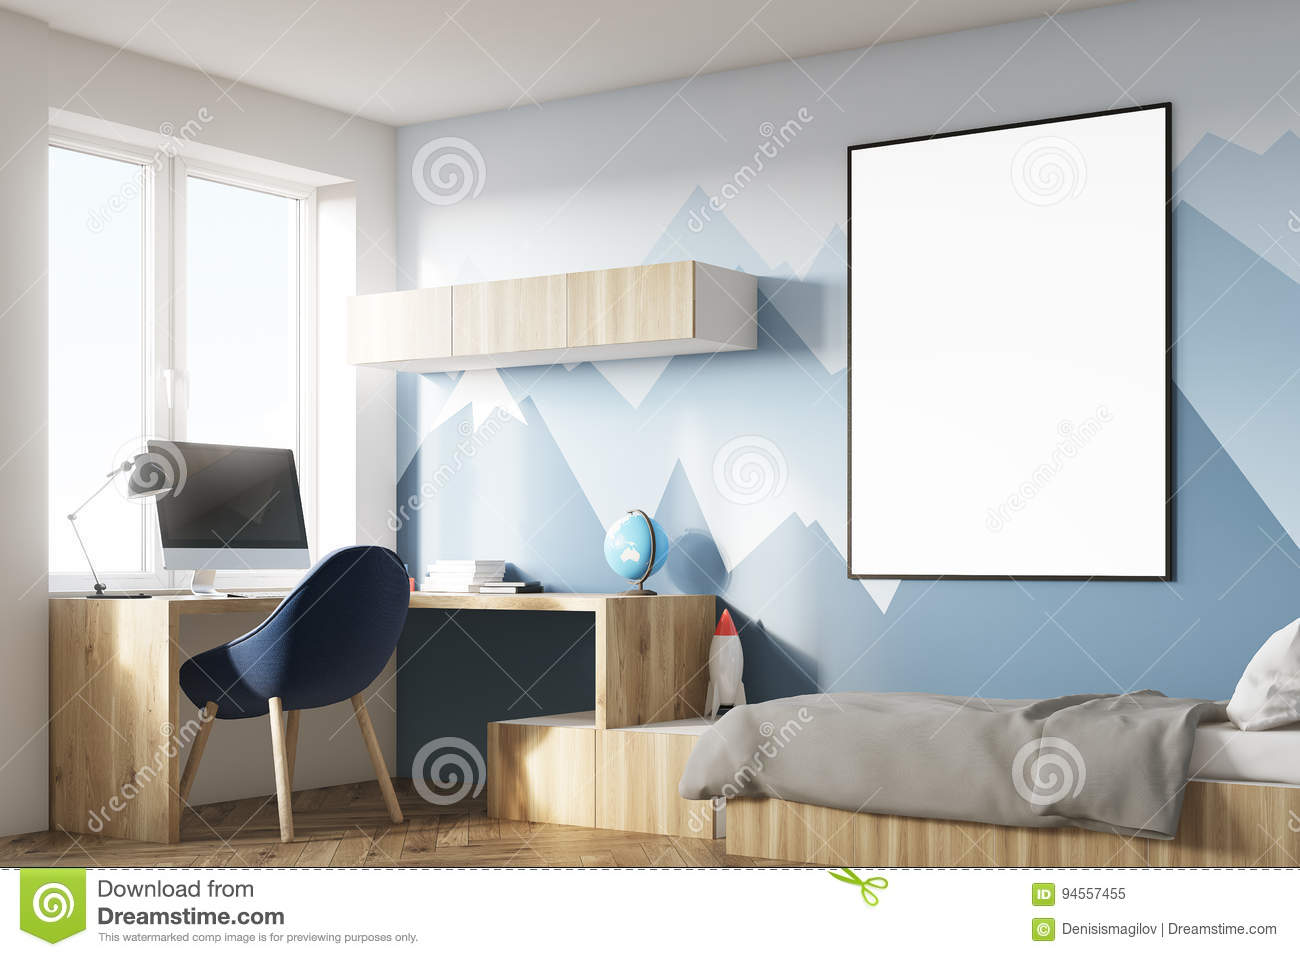 Good Wallpaper Mountain Room - kids-room-poster-mountain-corner-interior-hanging-above-bed-bookshelves-blue-chair-wallpaper-d-rendering-mock-94557455  Picture_391613.jpg